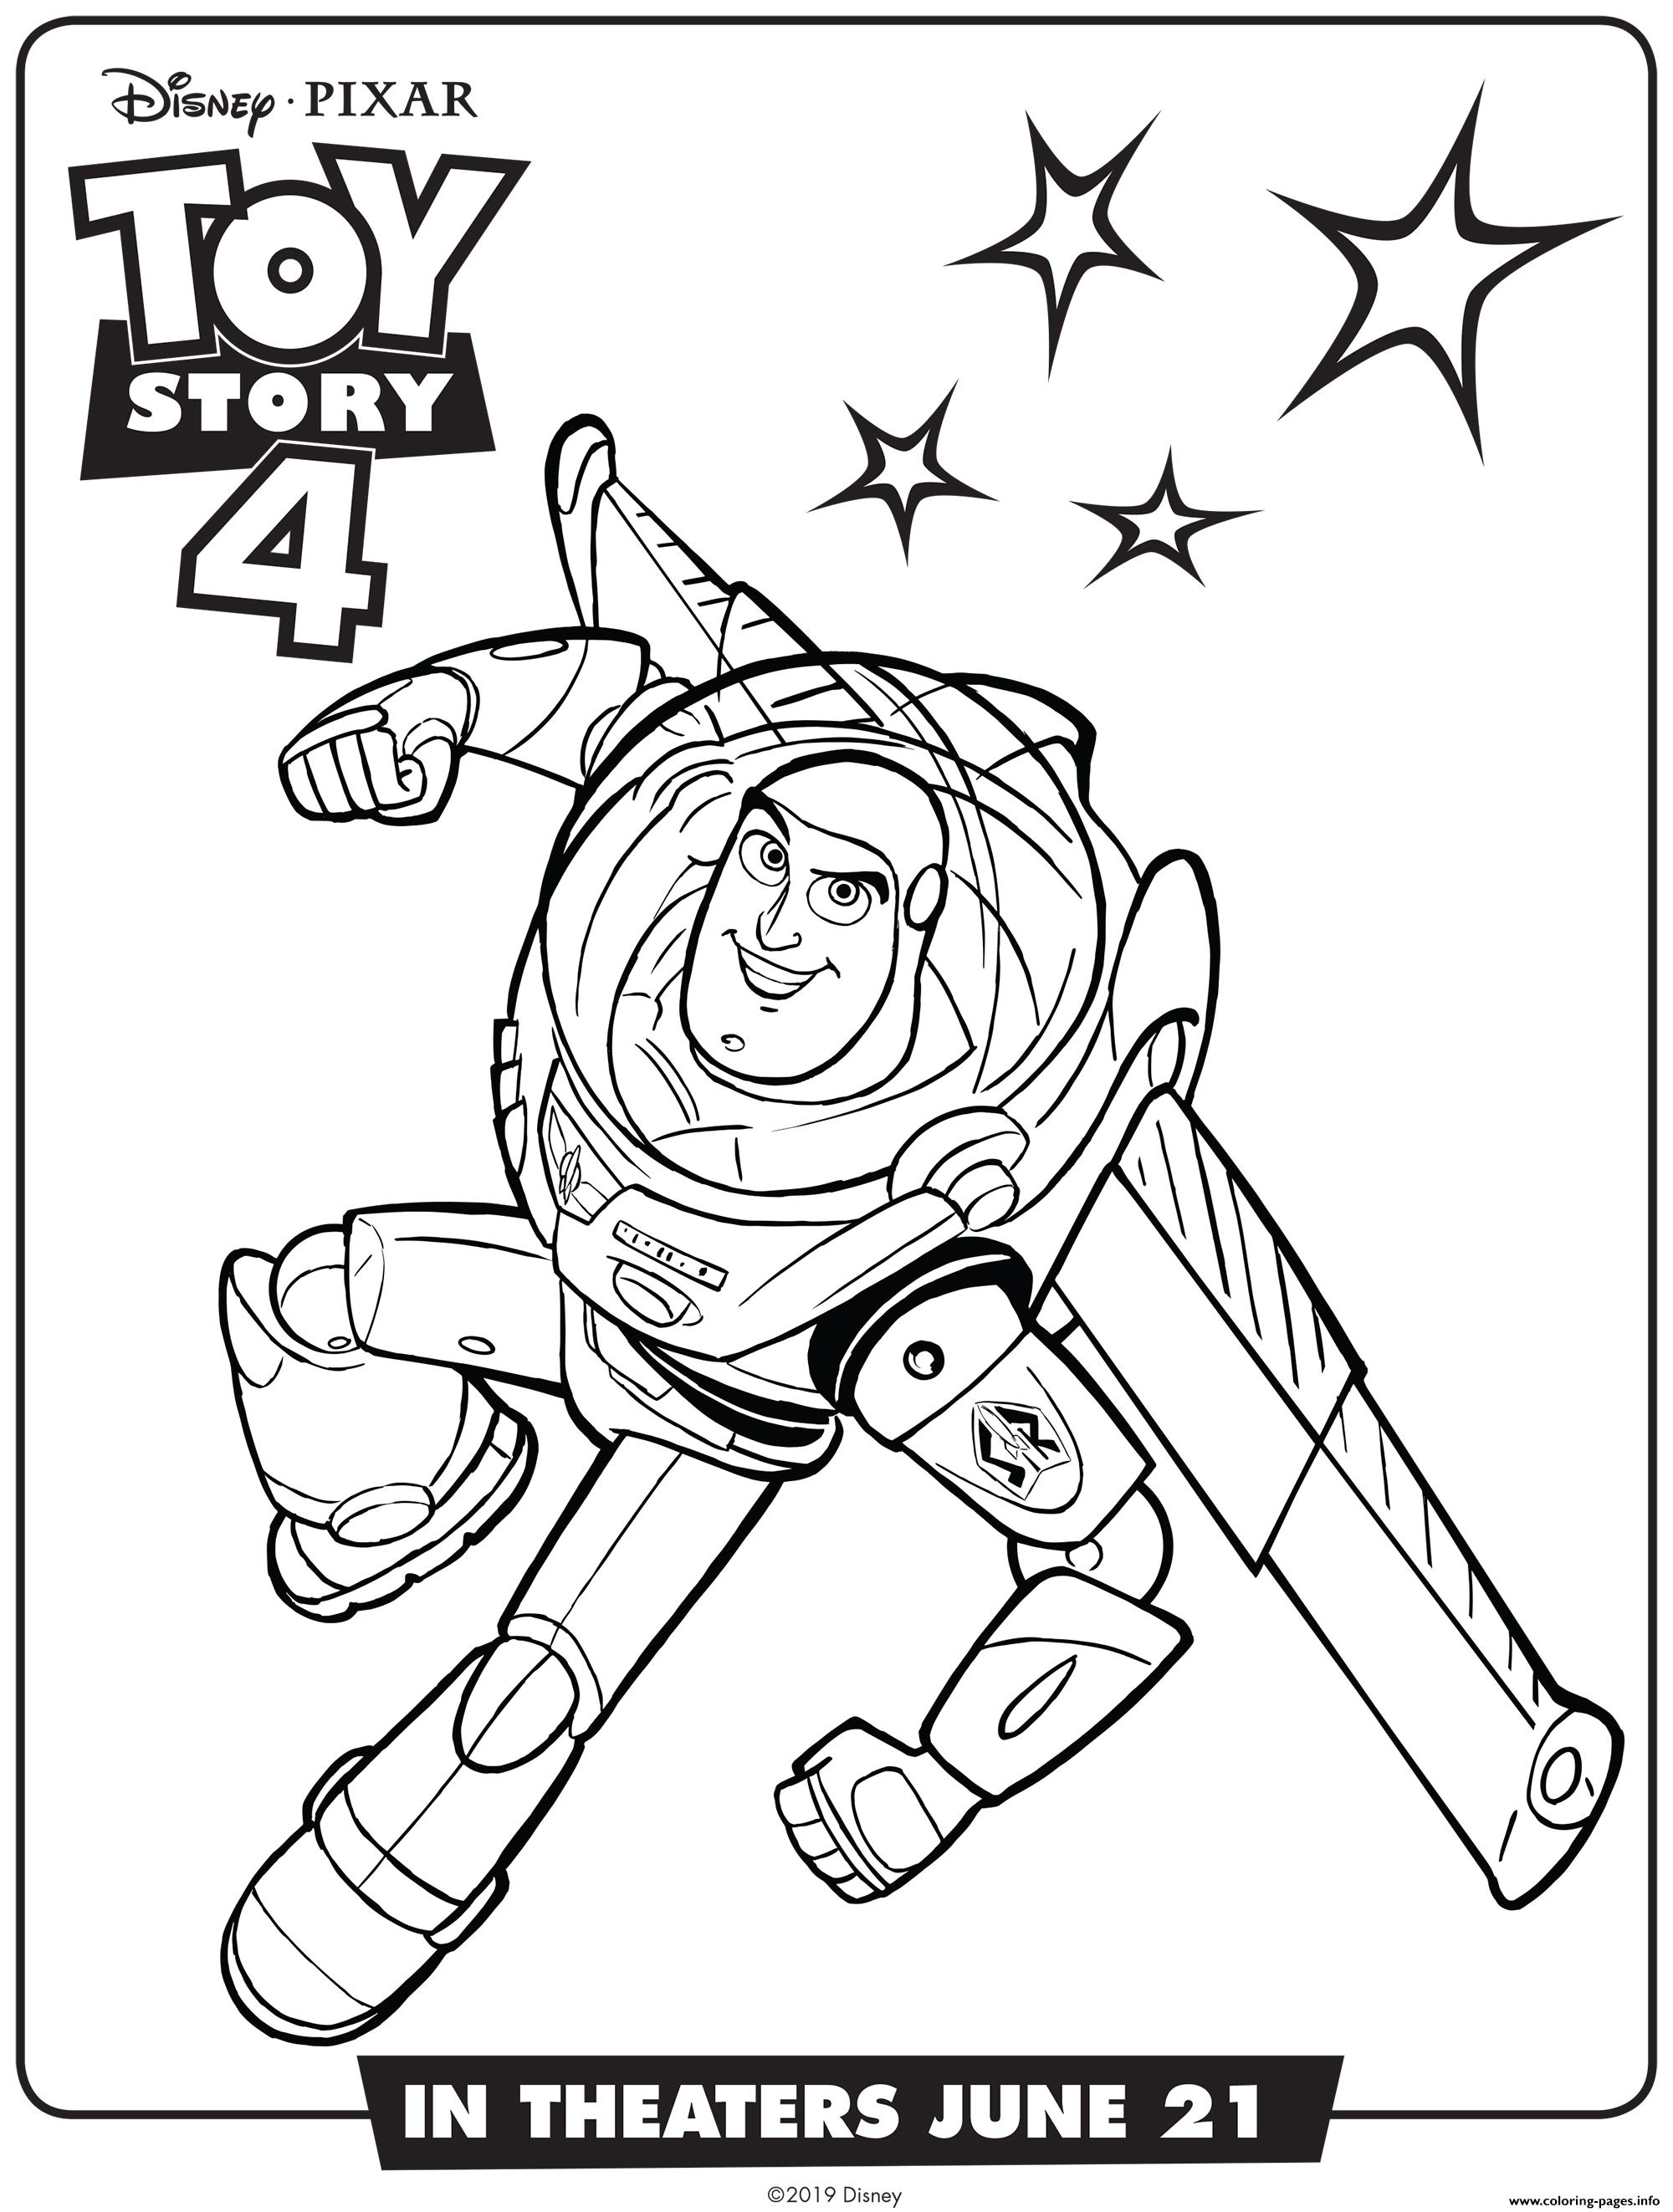 Toy Story 4 Buzz Lightyear Coloring Pages Printable